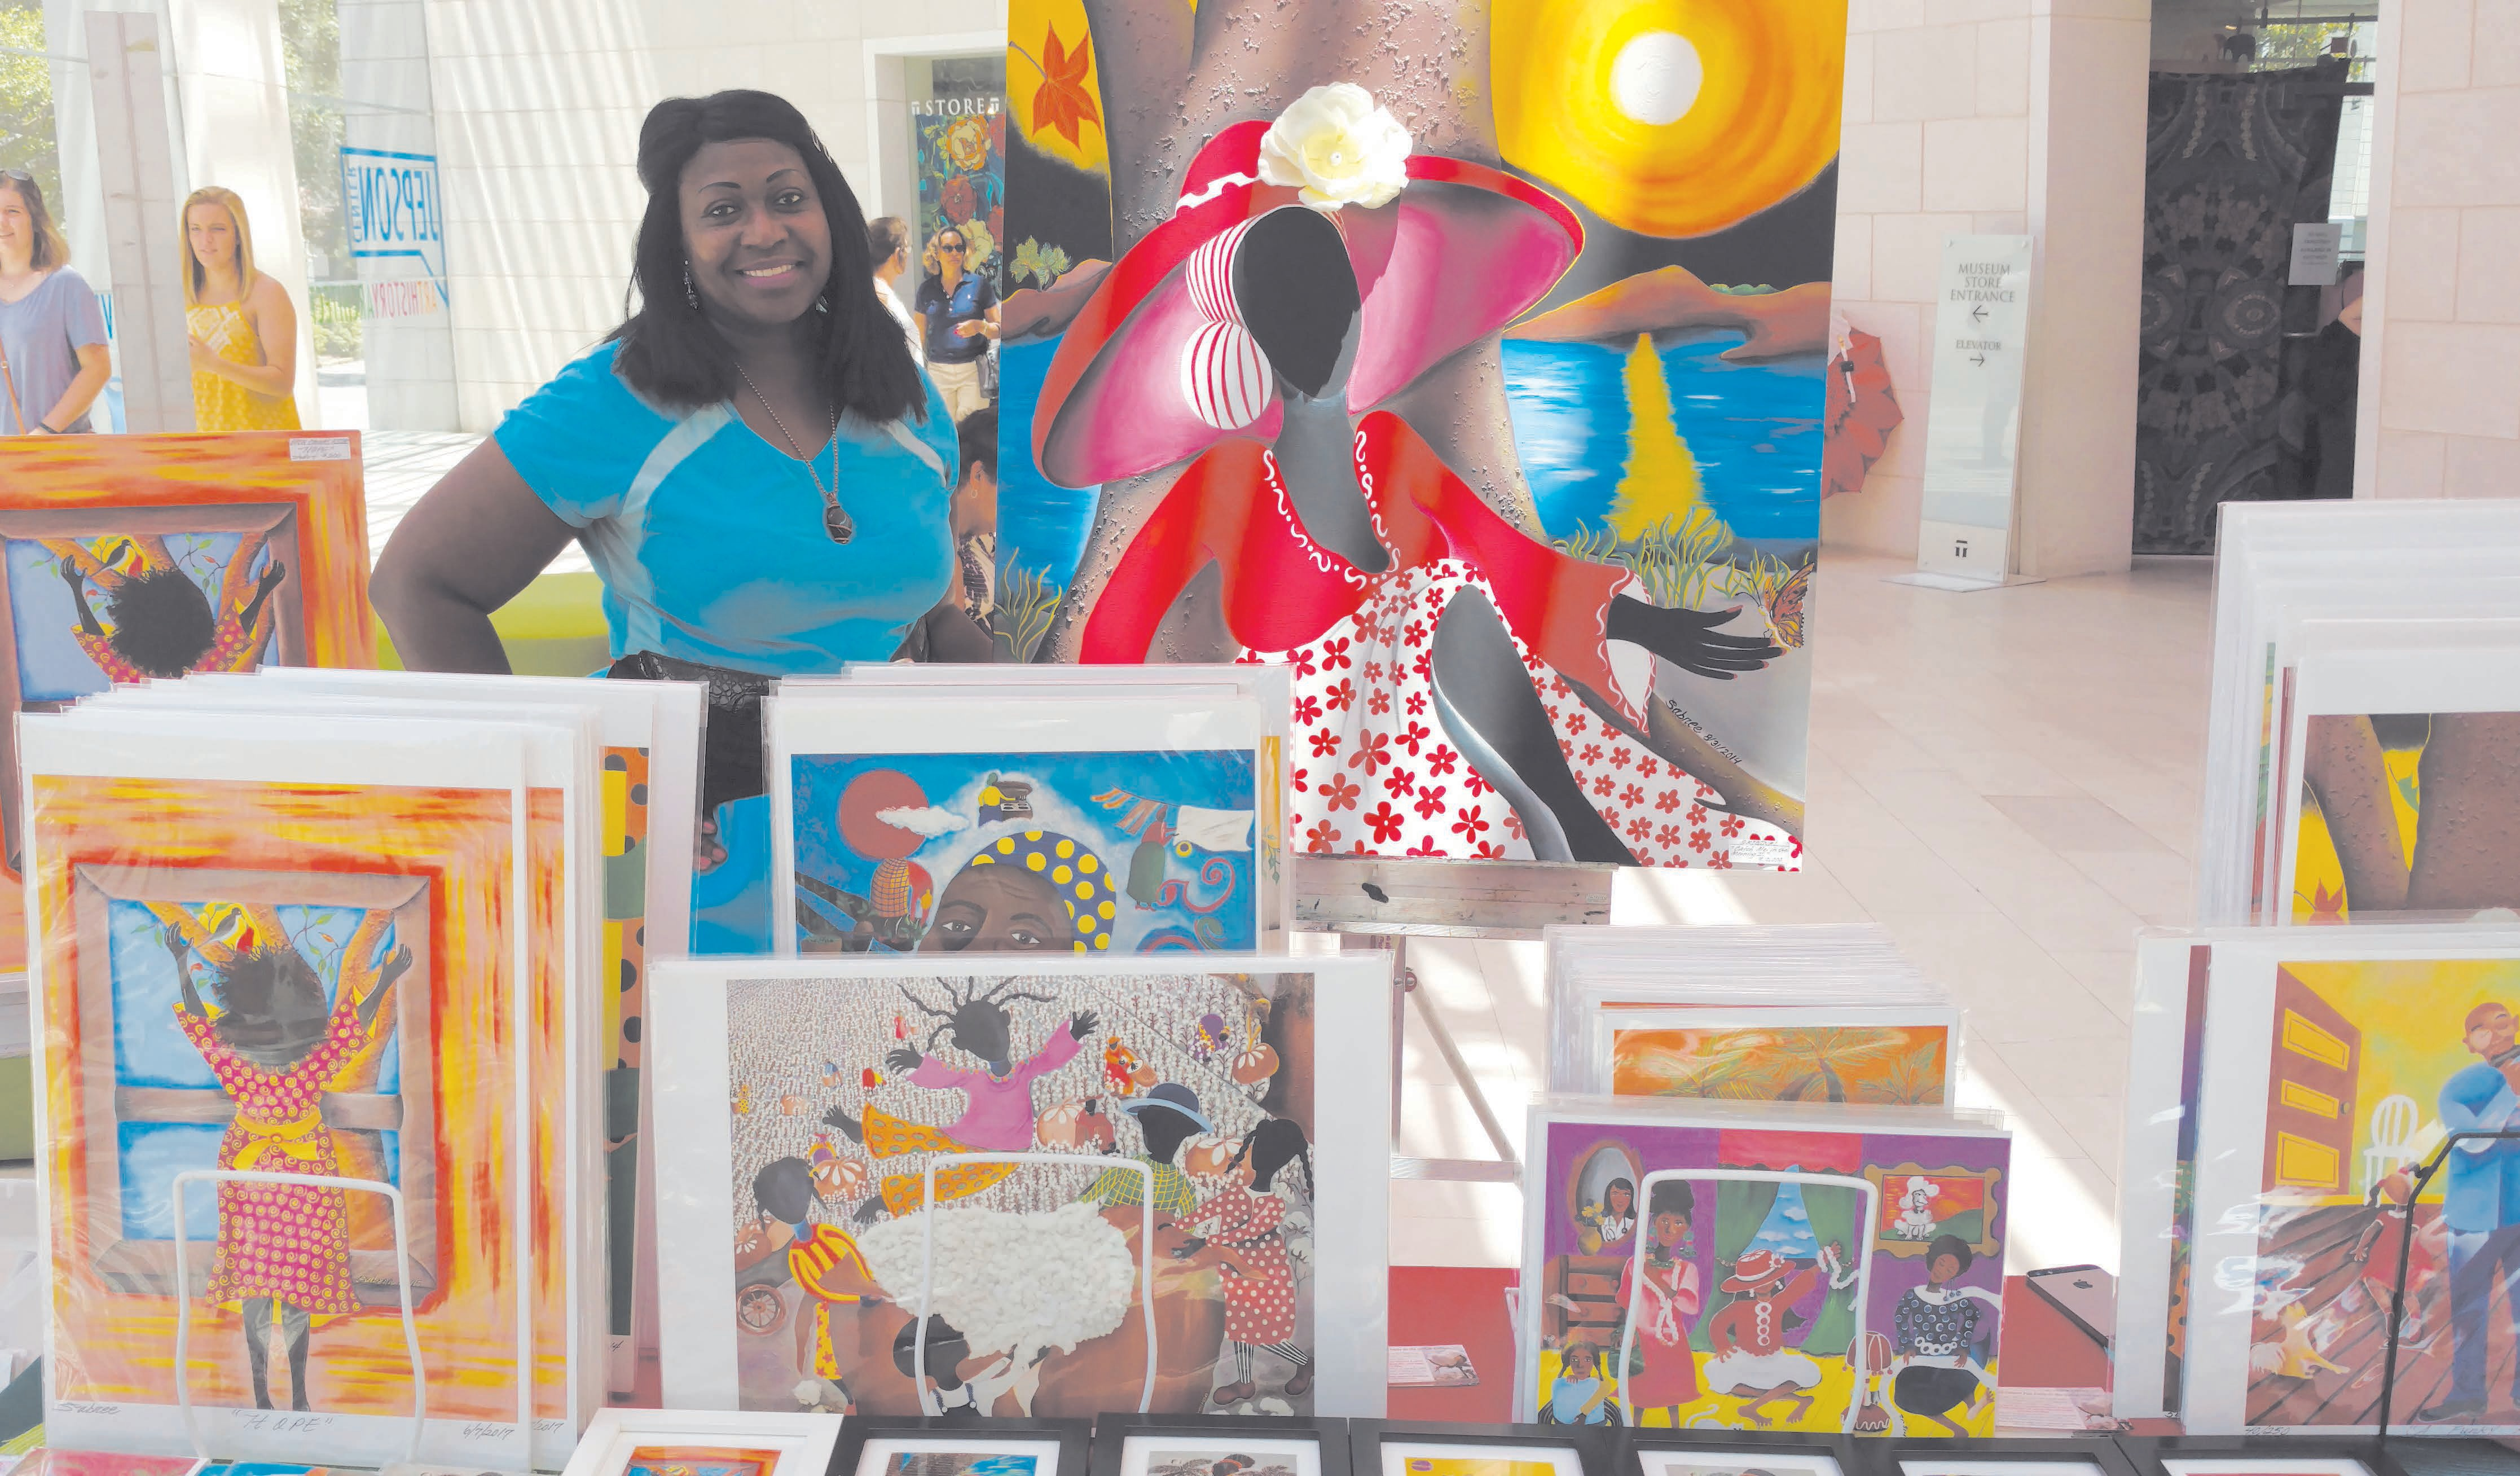 Patricia Sabree-Juneteenth Featured Artist